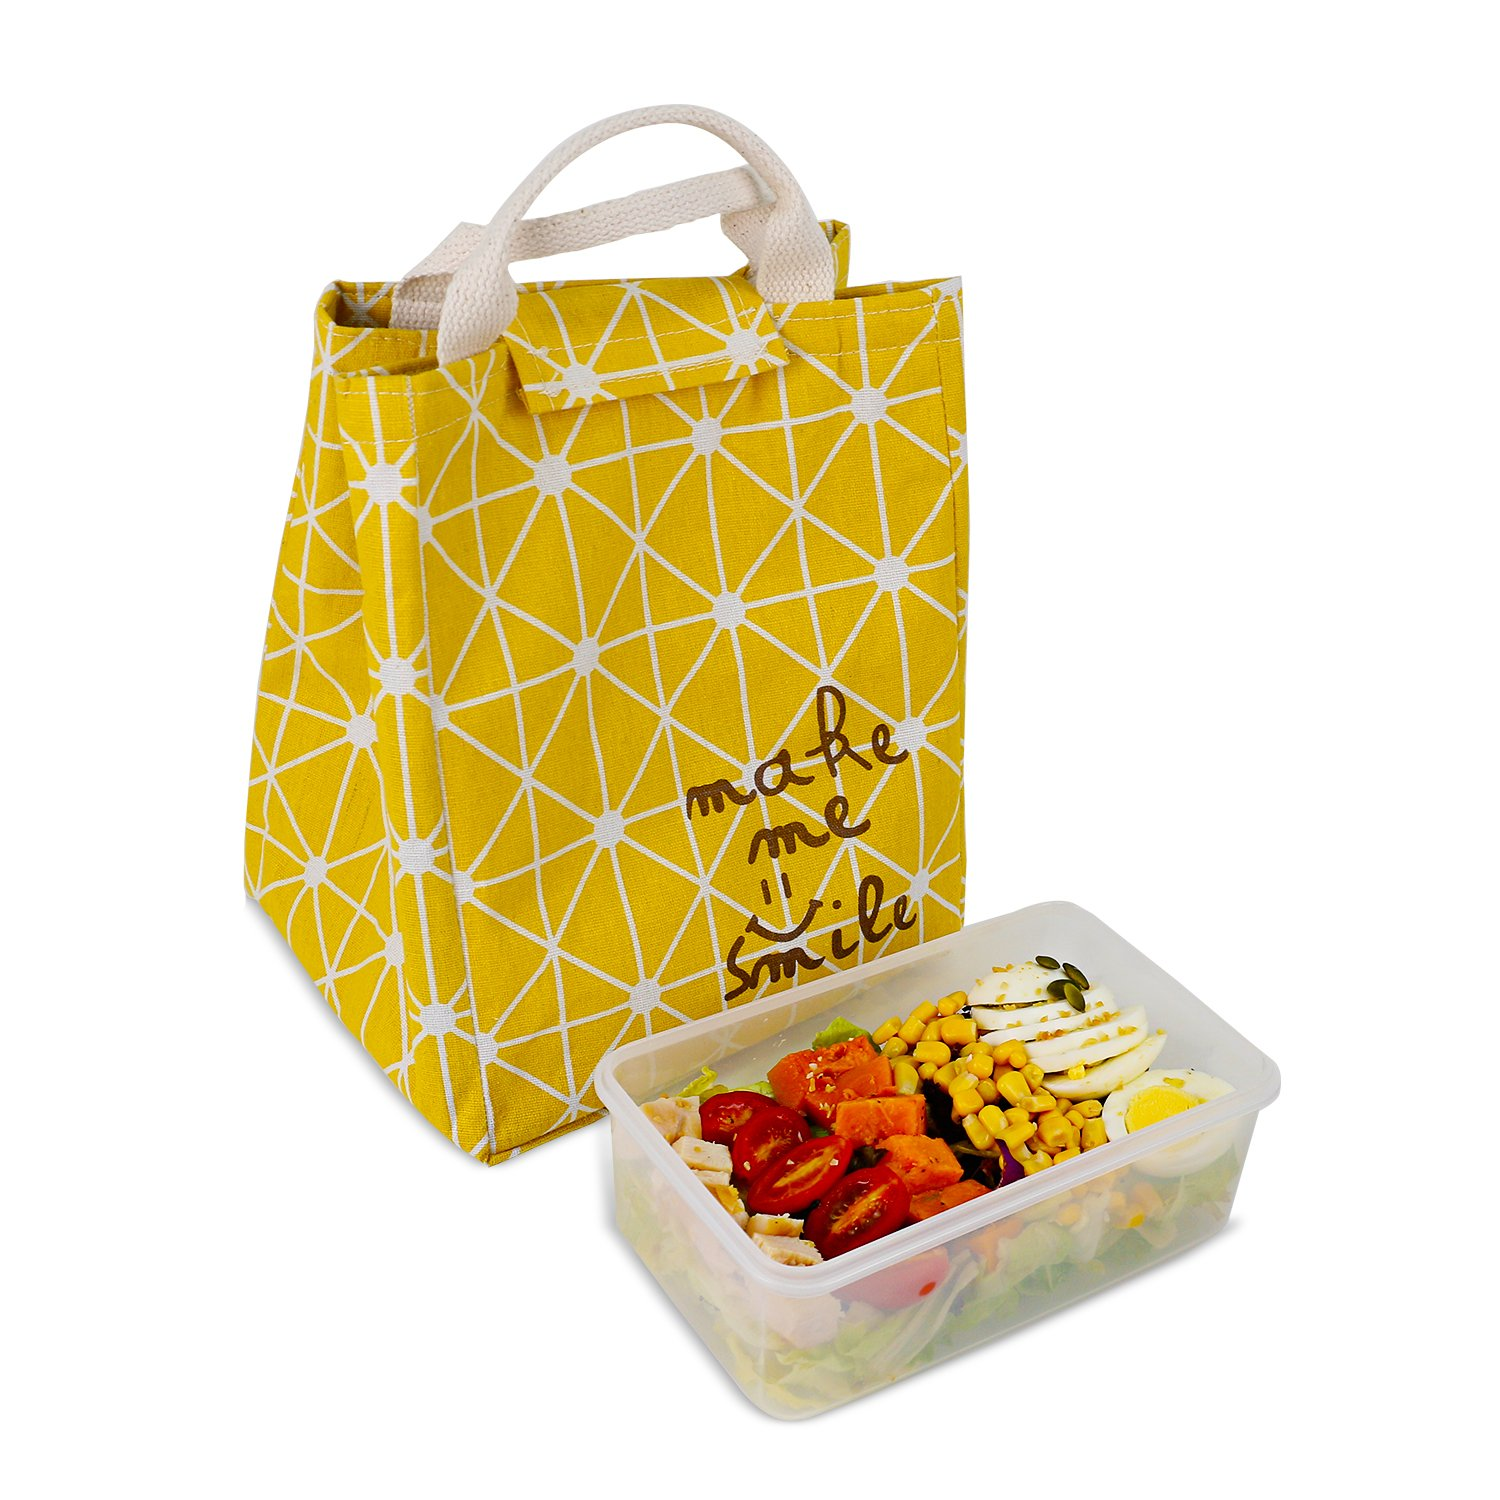 HOMESPON Reusable Lunch Bags Printed Canvas Fabric with Insulated Waterproof Aluminum Foil, Lunch Box for Women, Kids, Students (Rhombus Pattern-Yellow) by HOMESPON (Image #2)